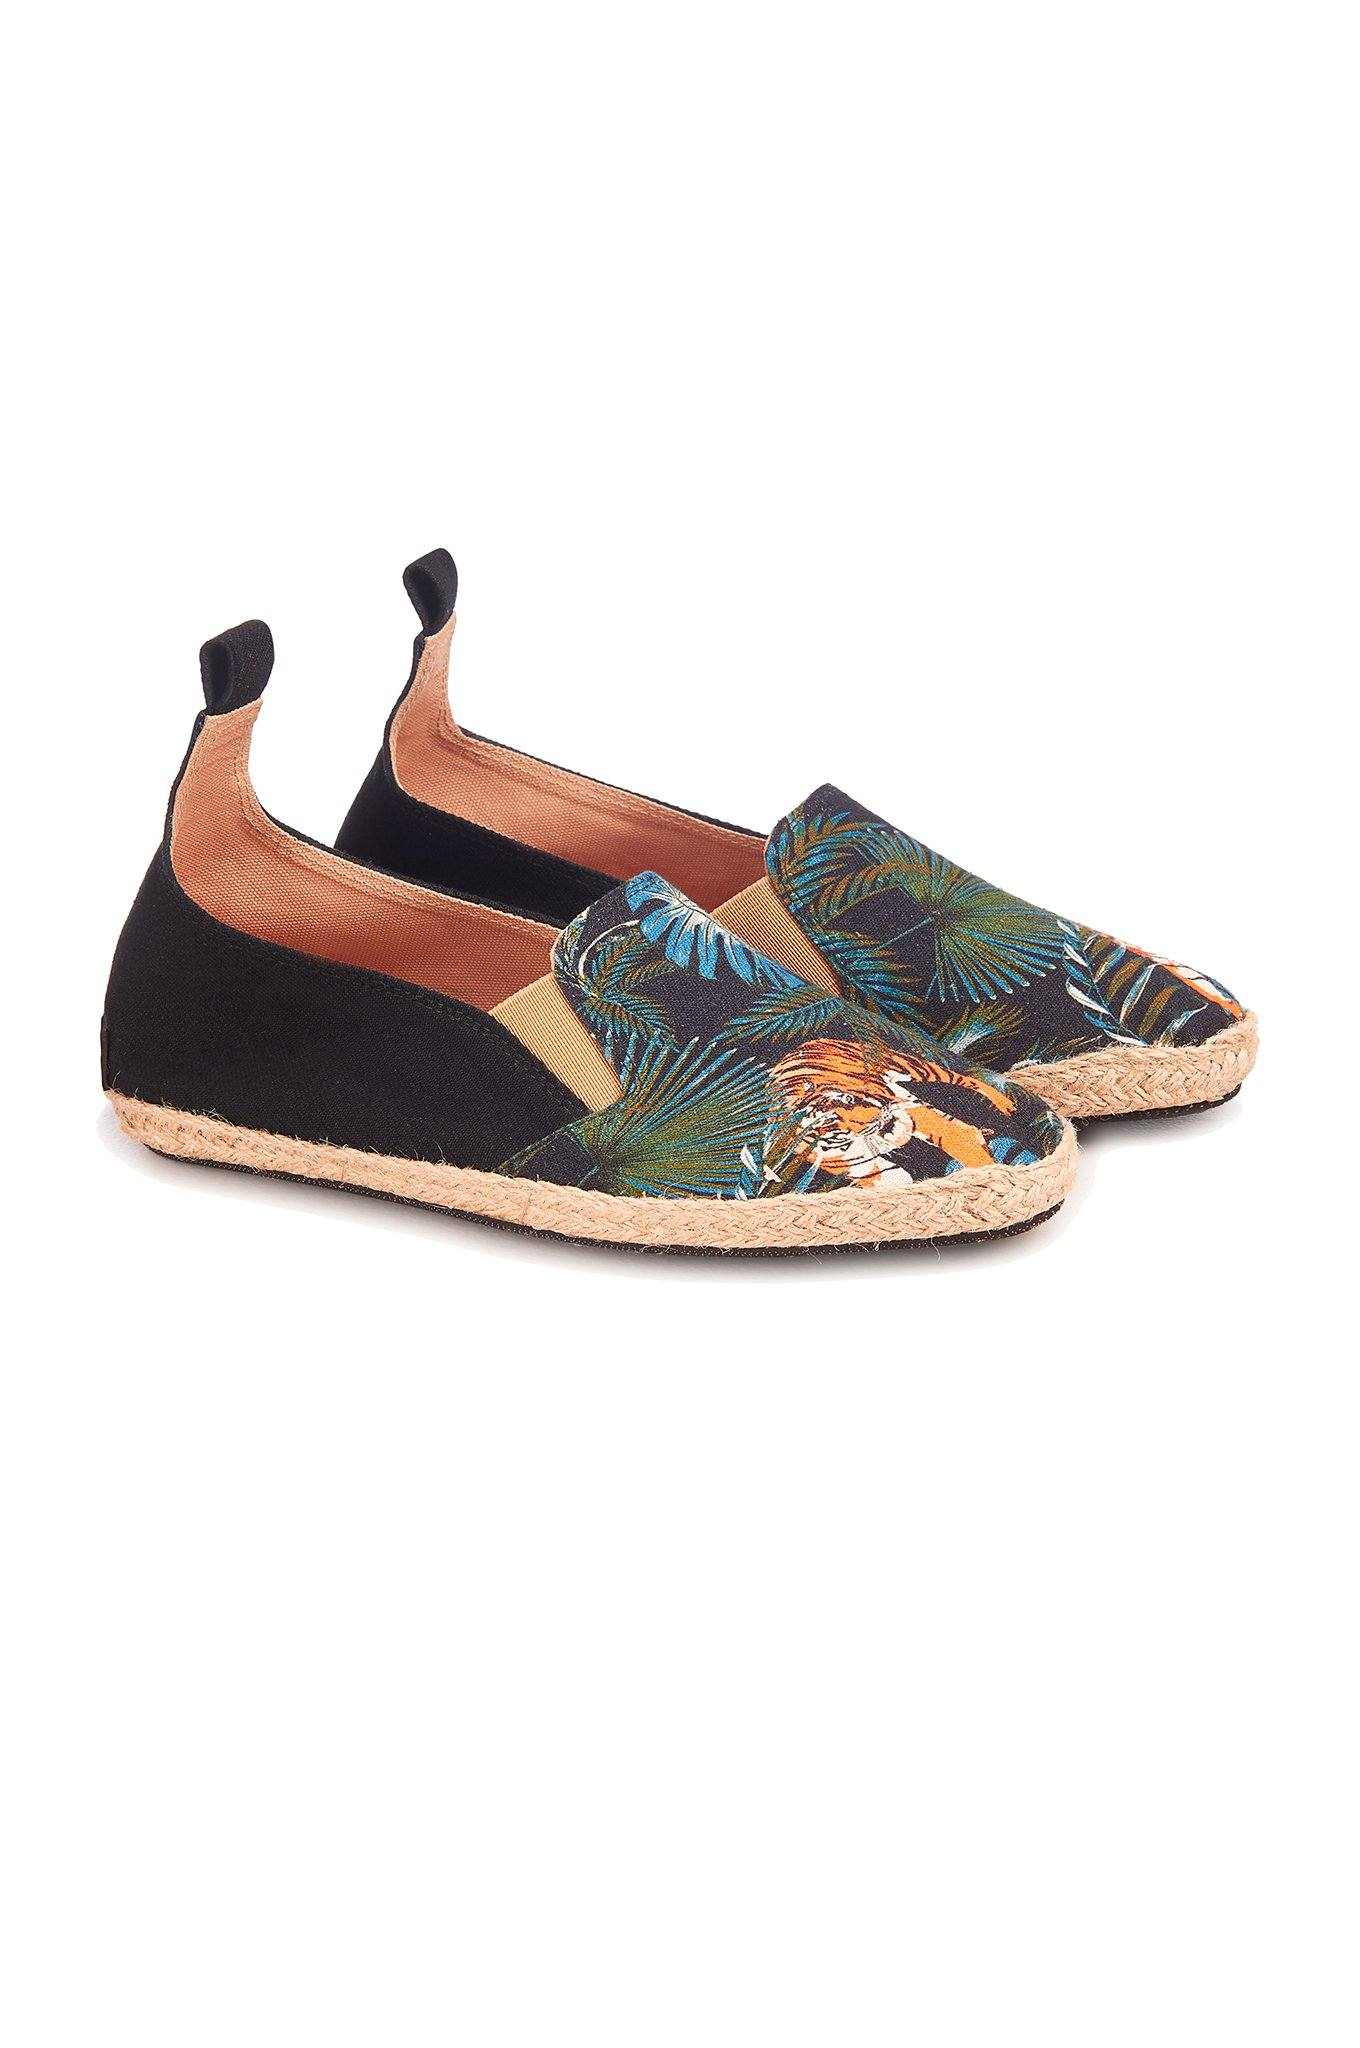 KUNG FU Black/SOS Womens Shoes - Komodo Fashion